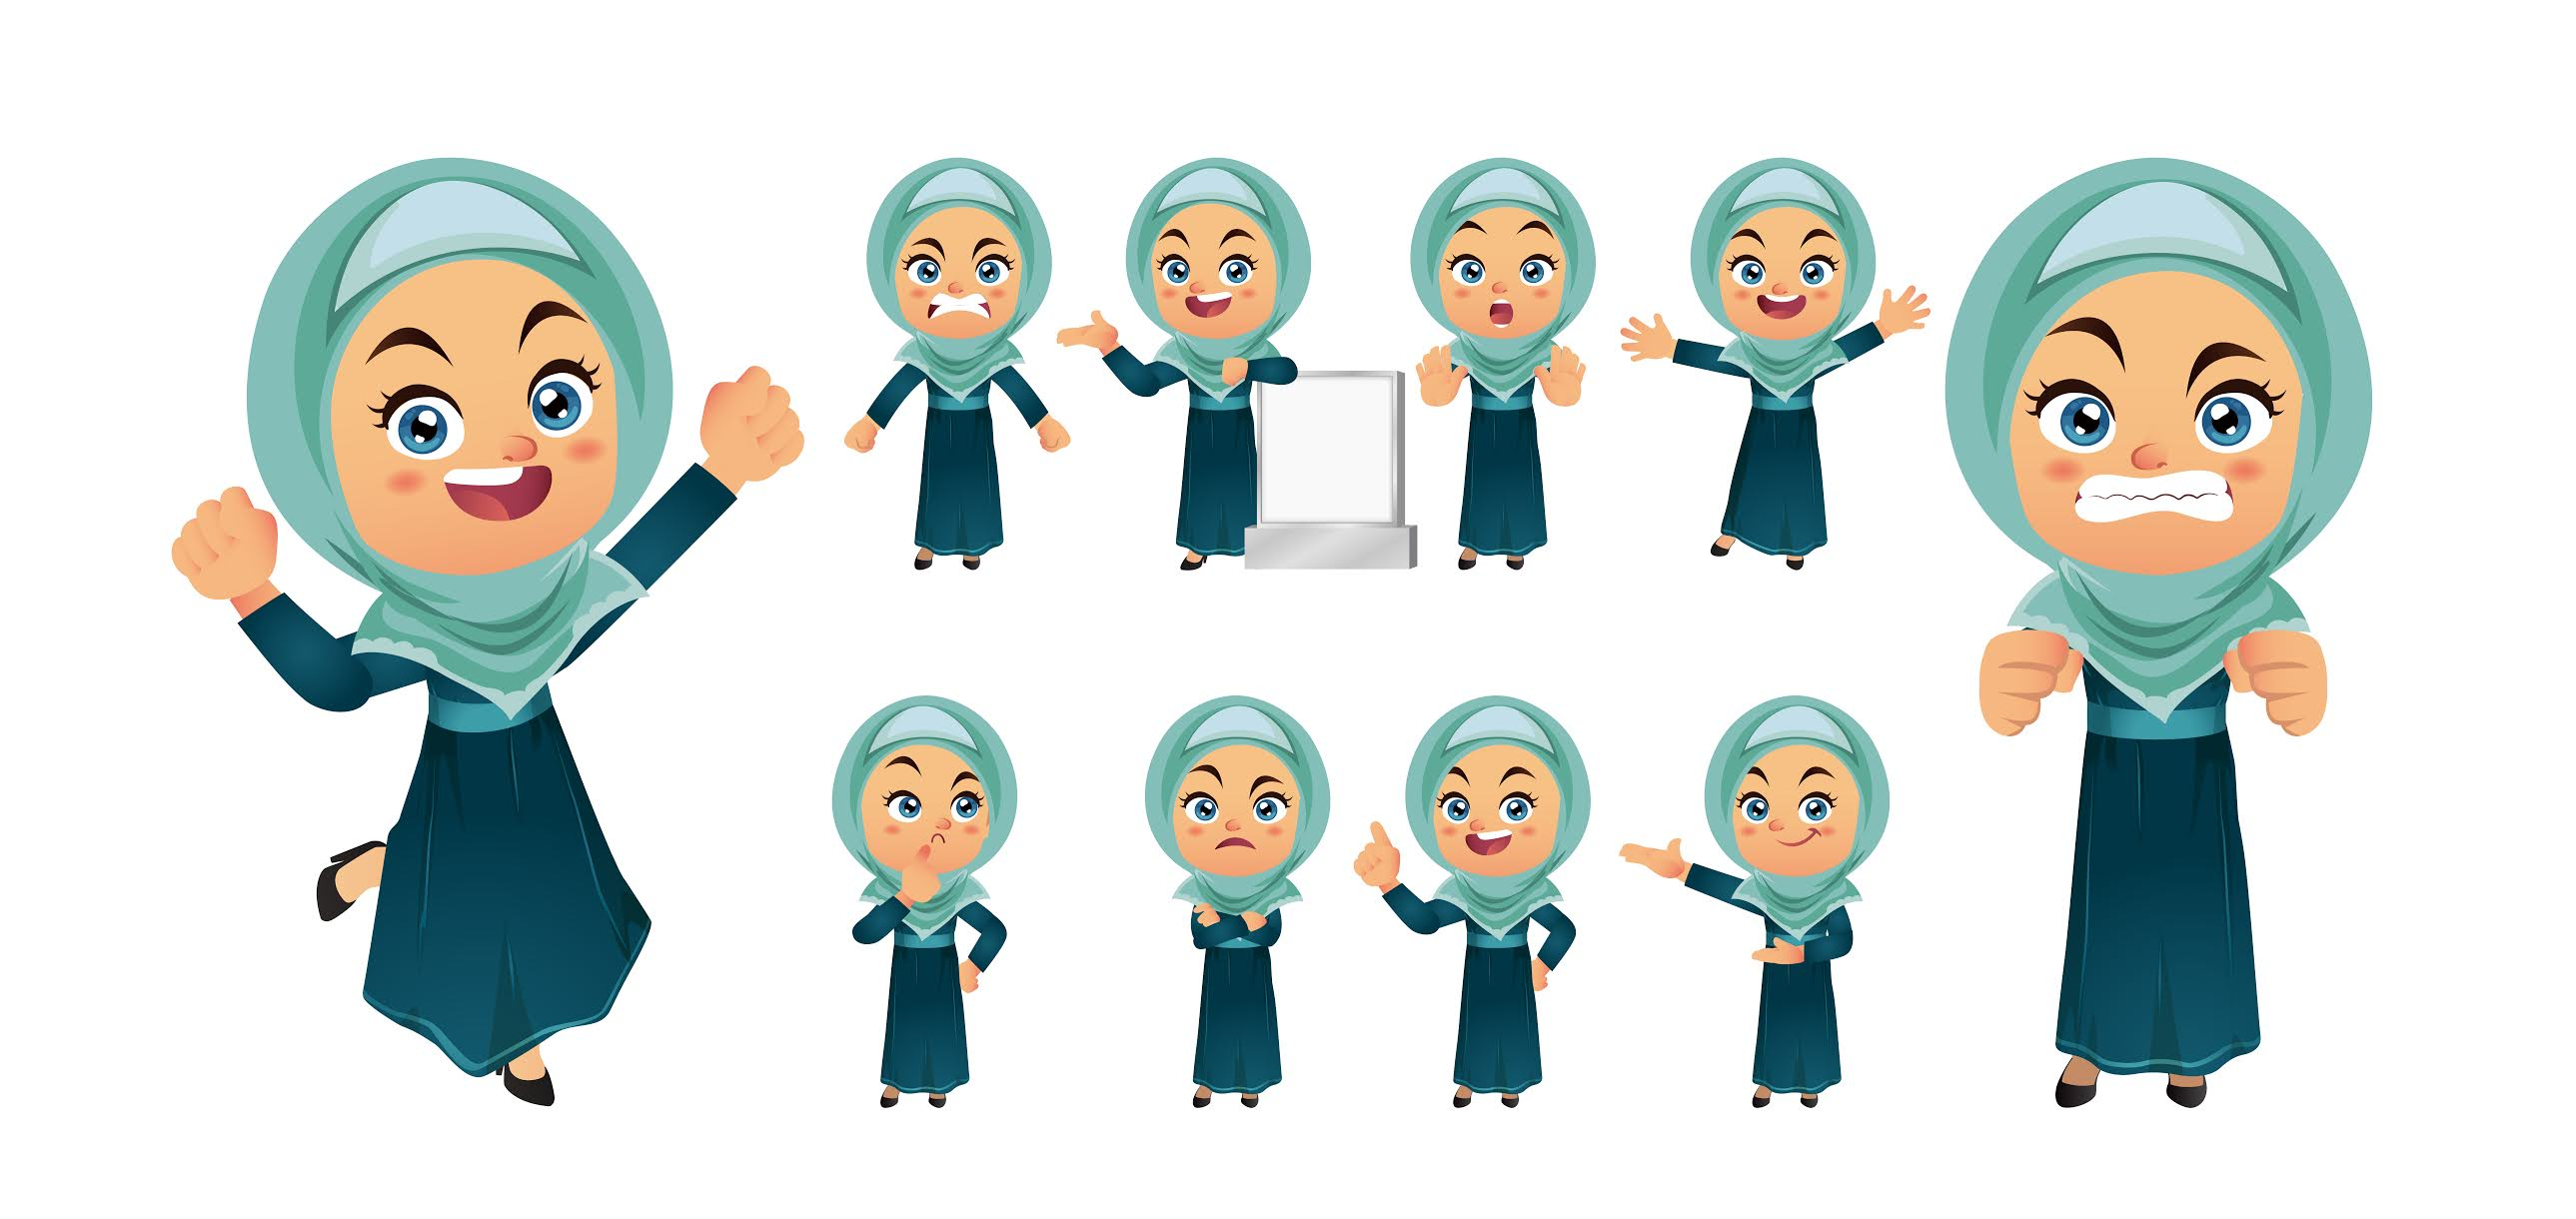 A collection of beautiful veiled Muslim children designs in Photoshop vector format